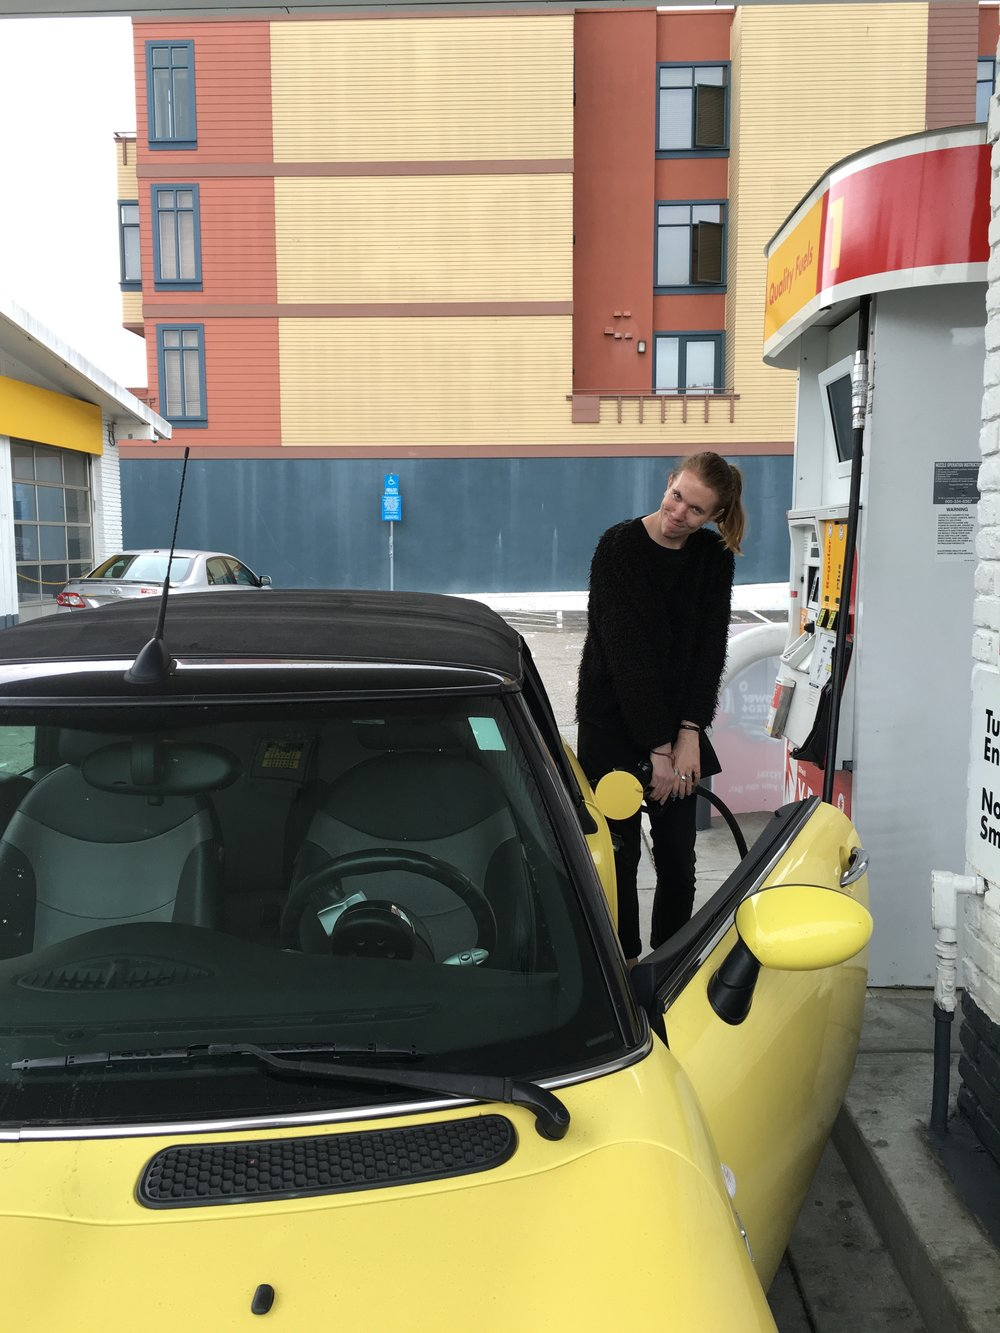 Pumping gas into a Getaround during on sponsored story with the brand.